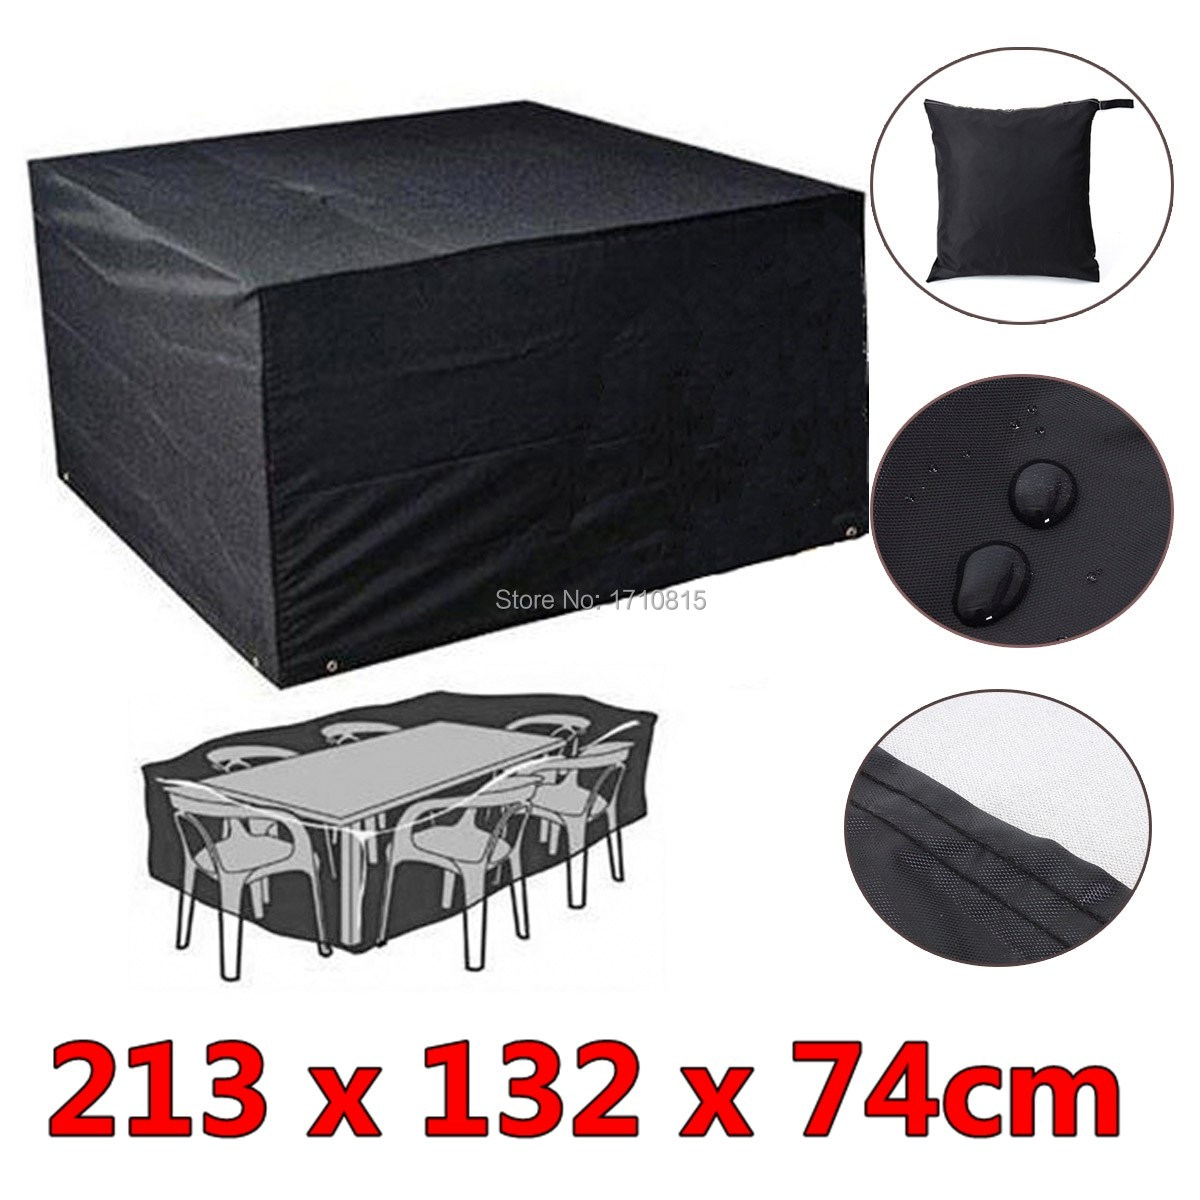 6 Seaters Dust Waterproof Outdoor Garden Furniture Rain Cover Shelter Rattan For Cube Table Chair Black(China (Mainland))